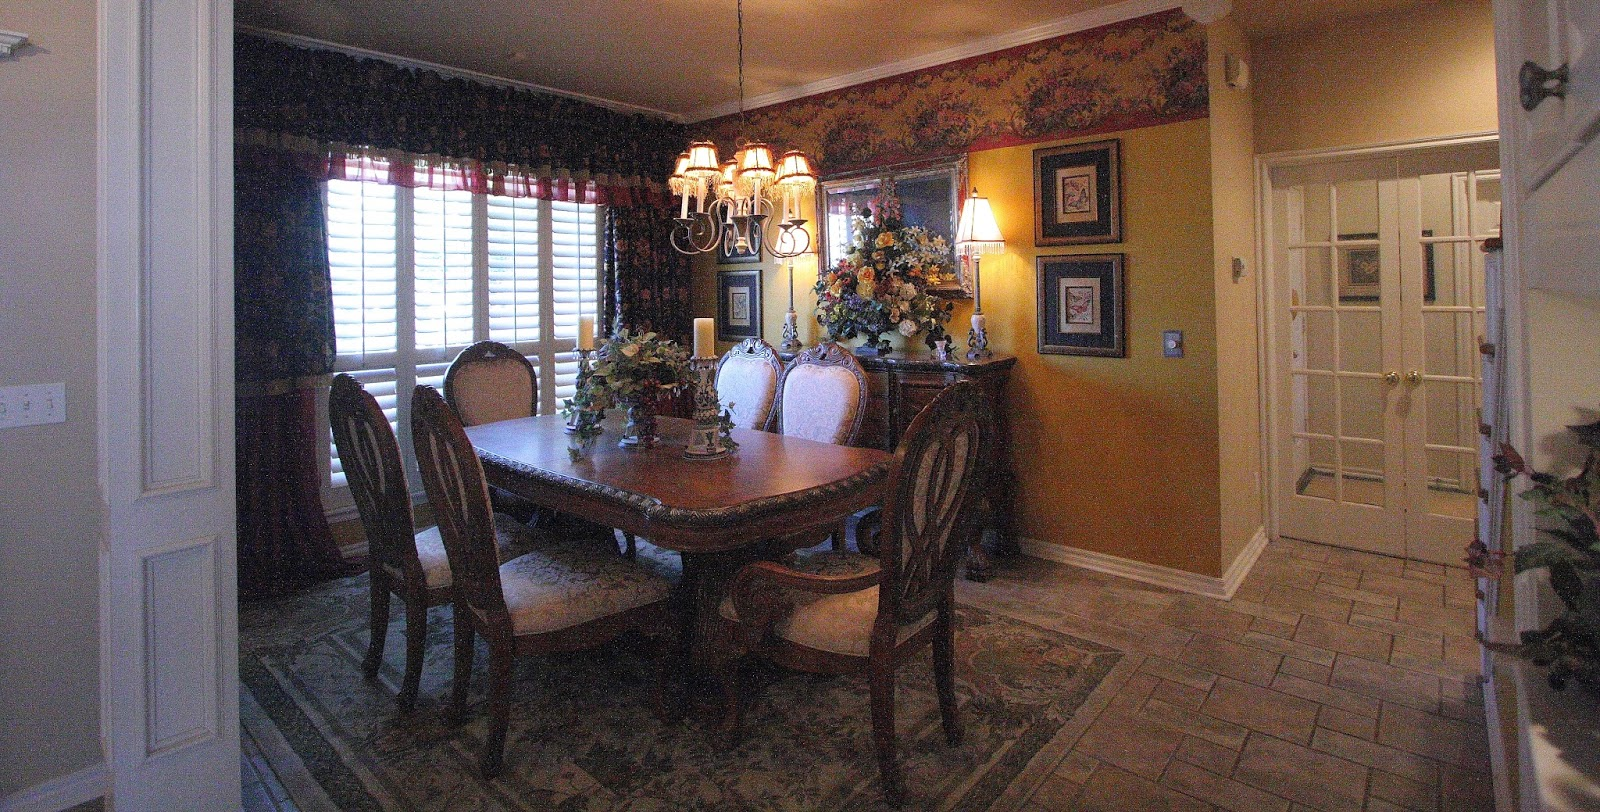 Here Is Our Dining Room At Old House I Loved How Cozy And Perfect The Decor Was But It So Small A Little Too